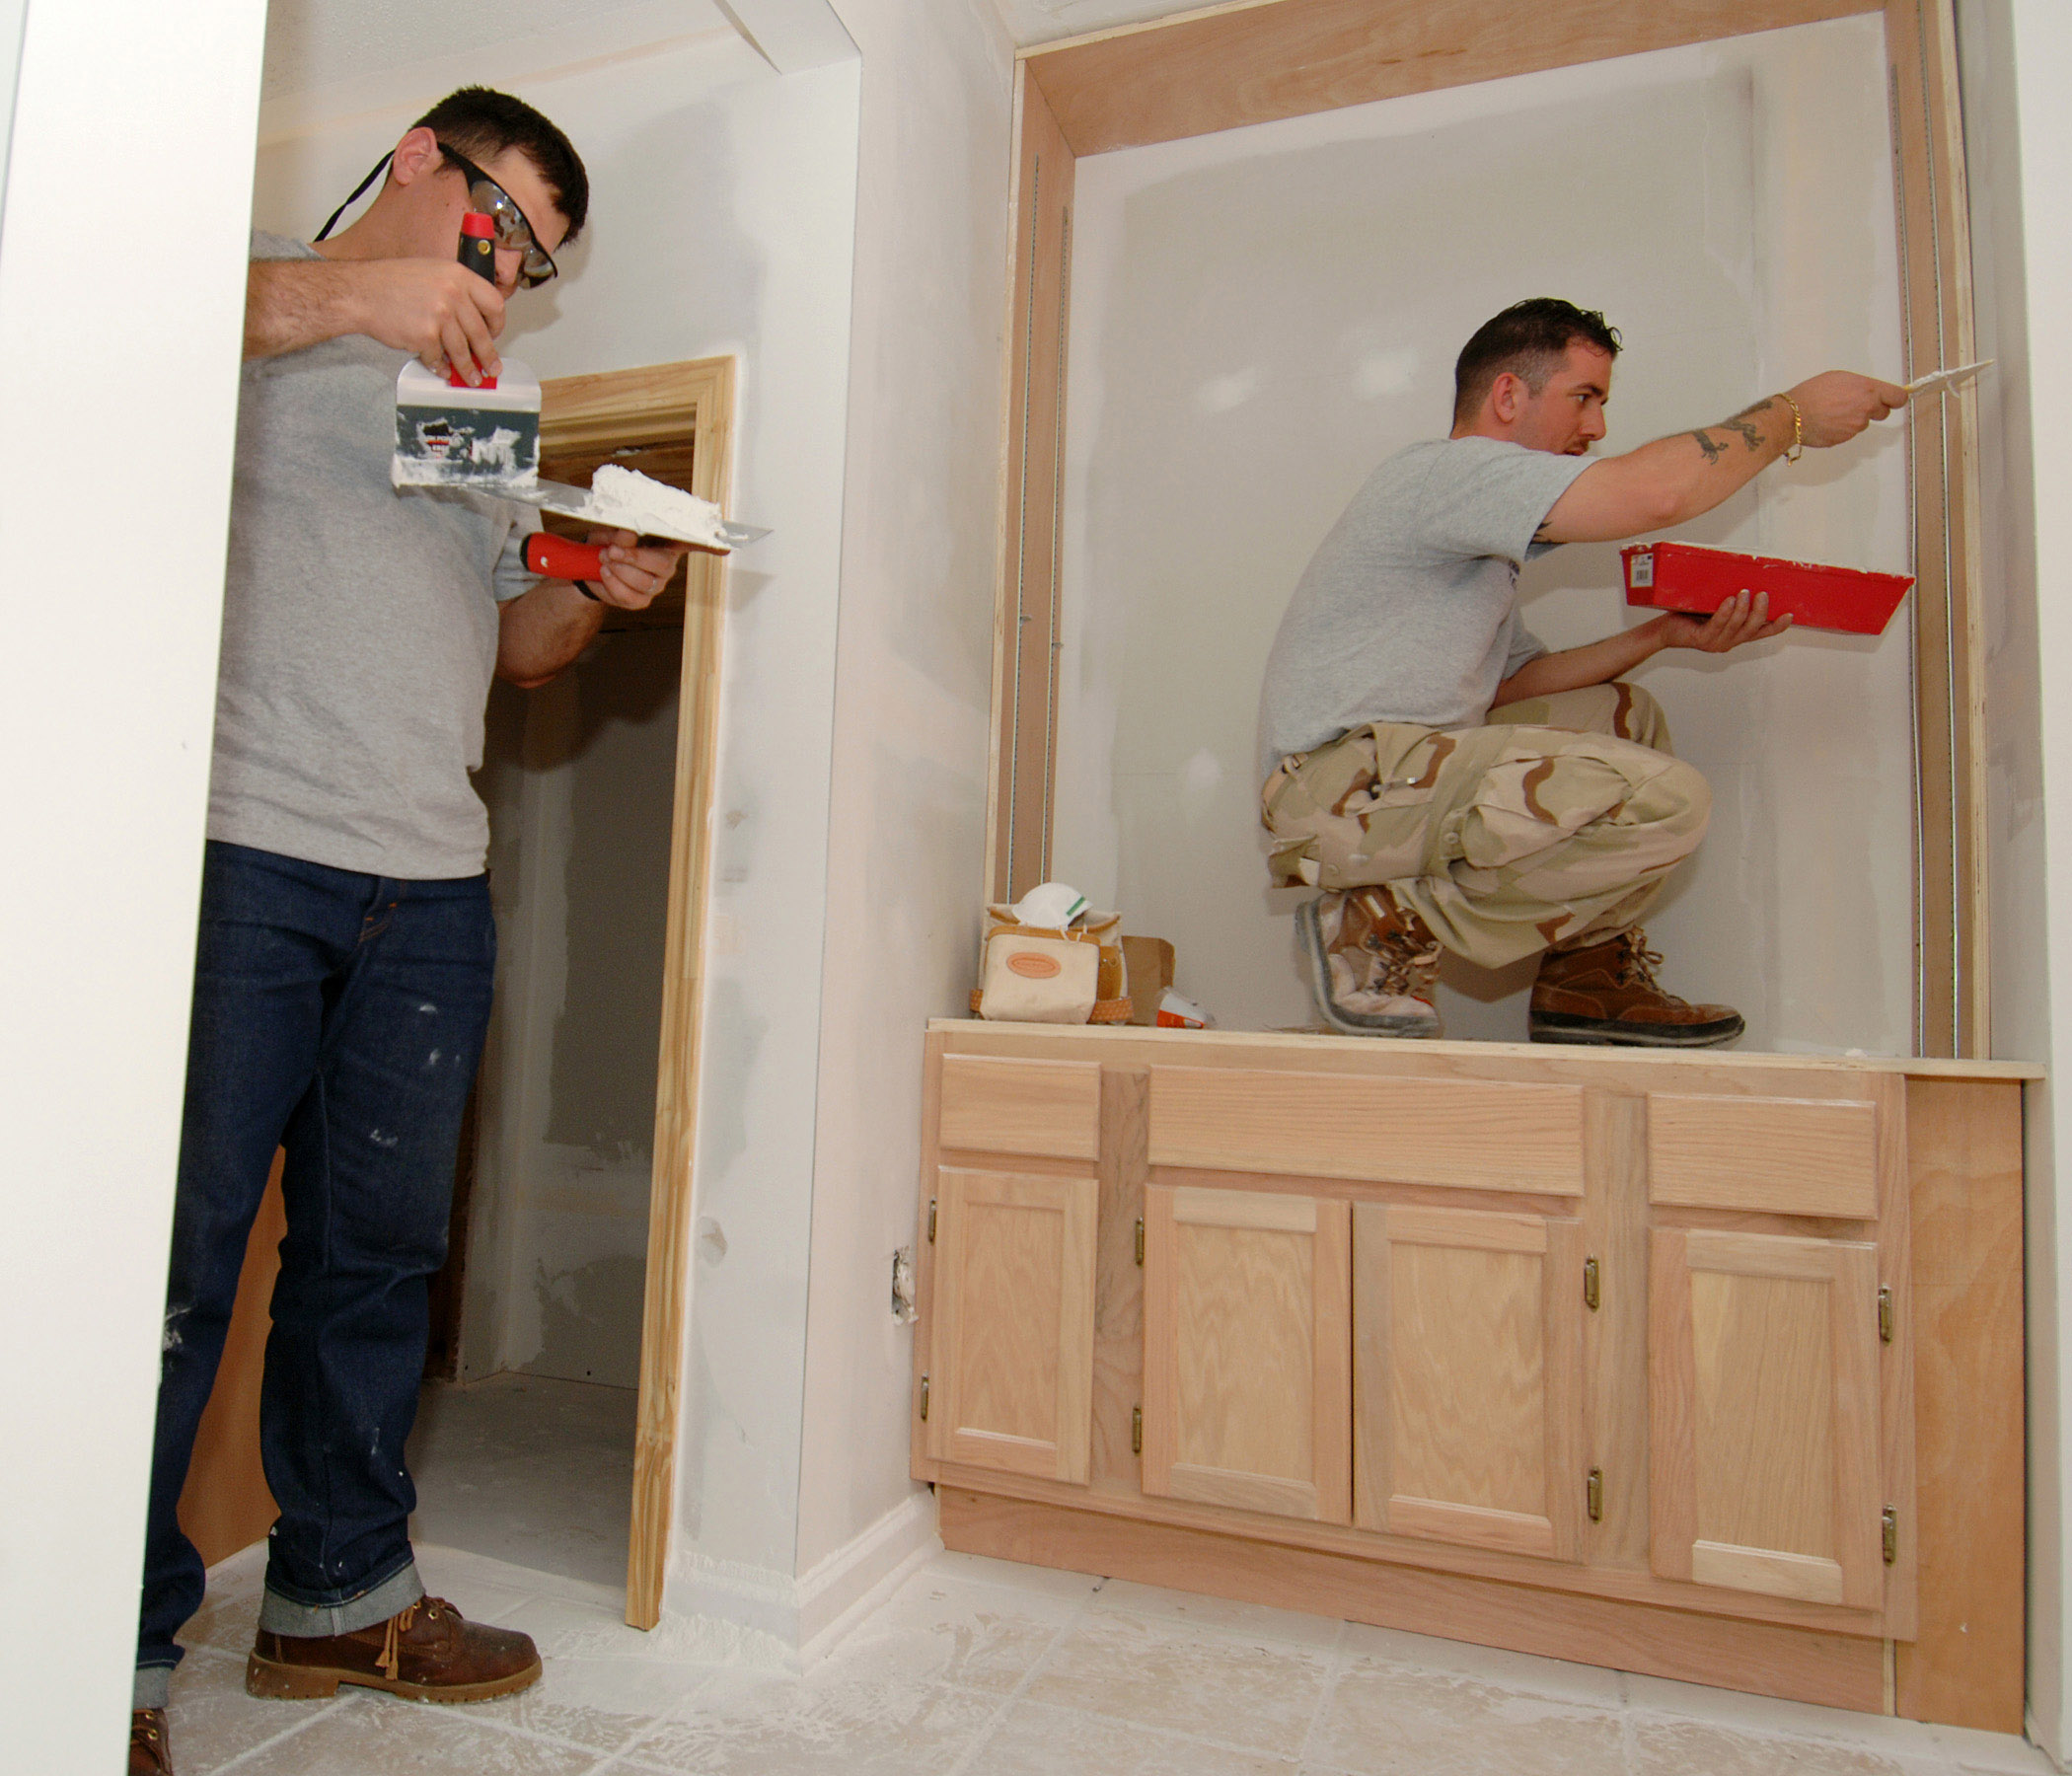 home handymen at work painting